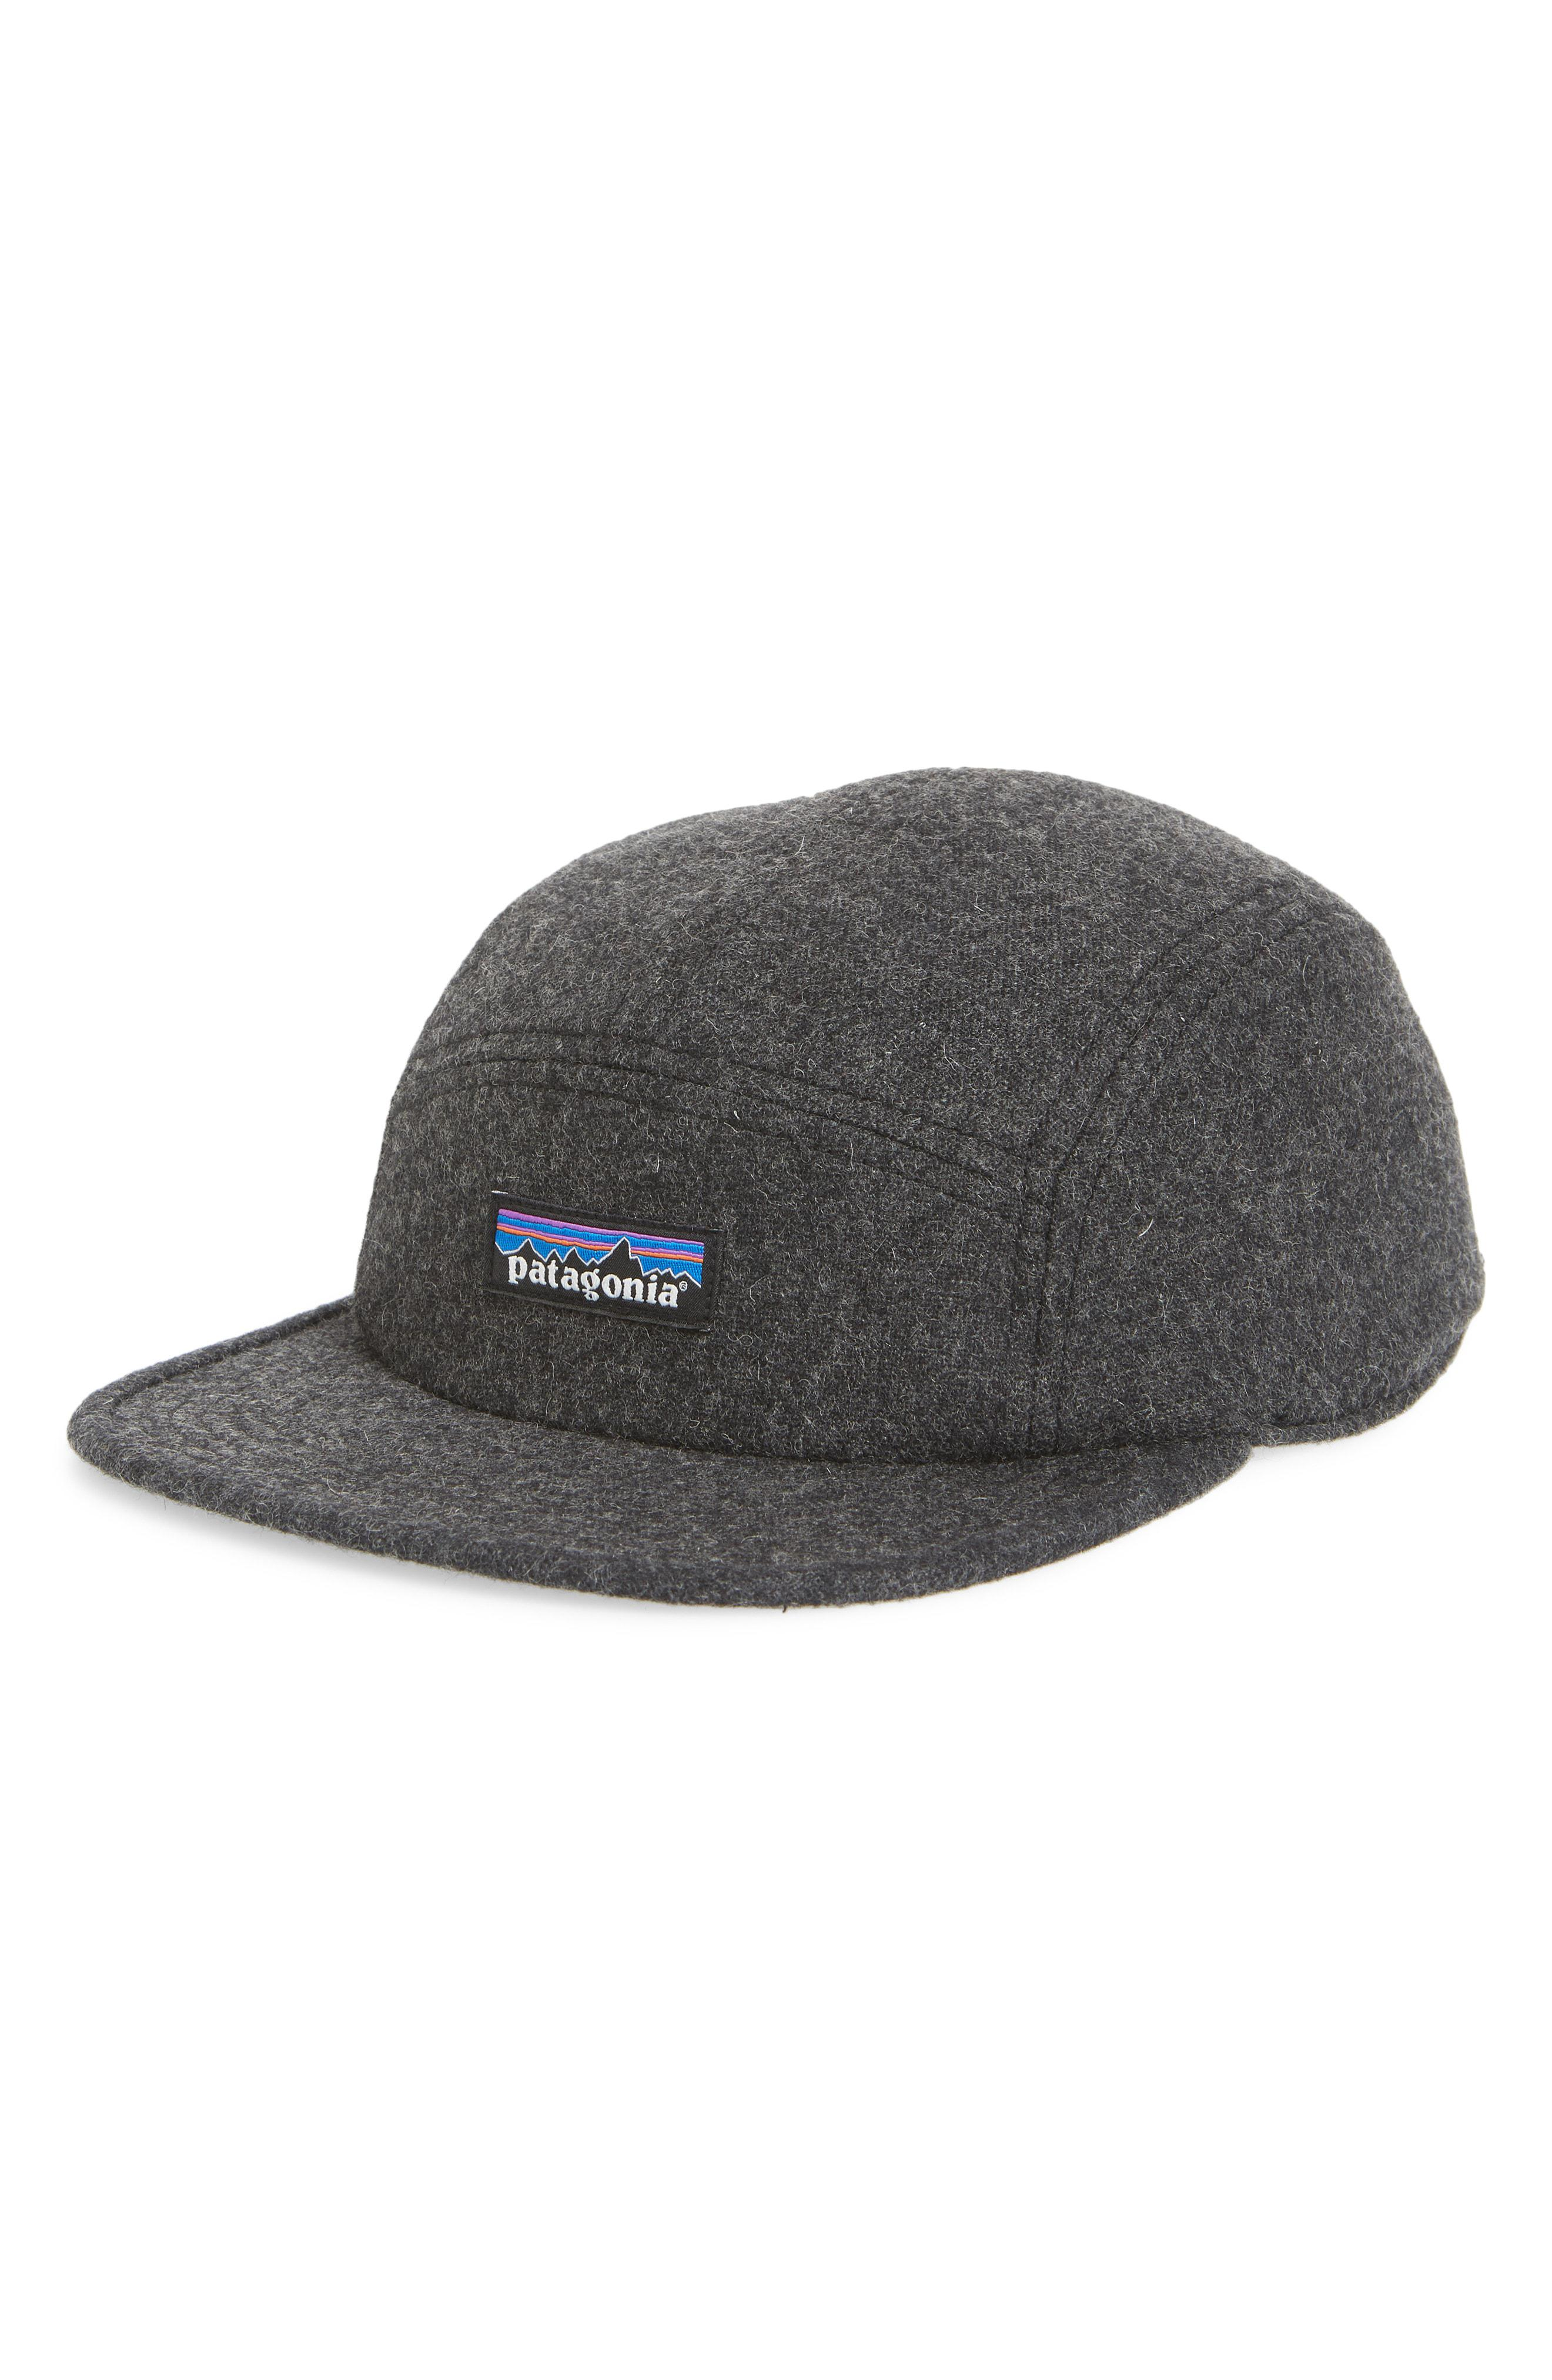 40a3044b Lyst - Patagonia Recycled Wool Ball Cap - in Gray for Men